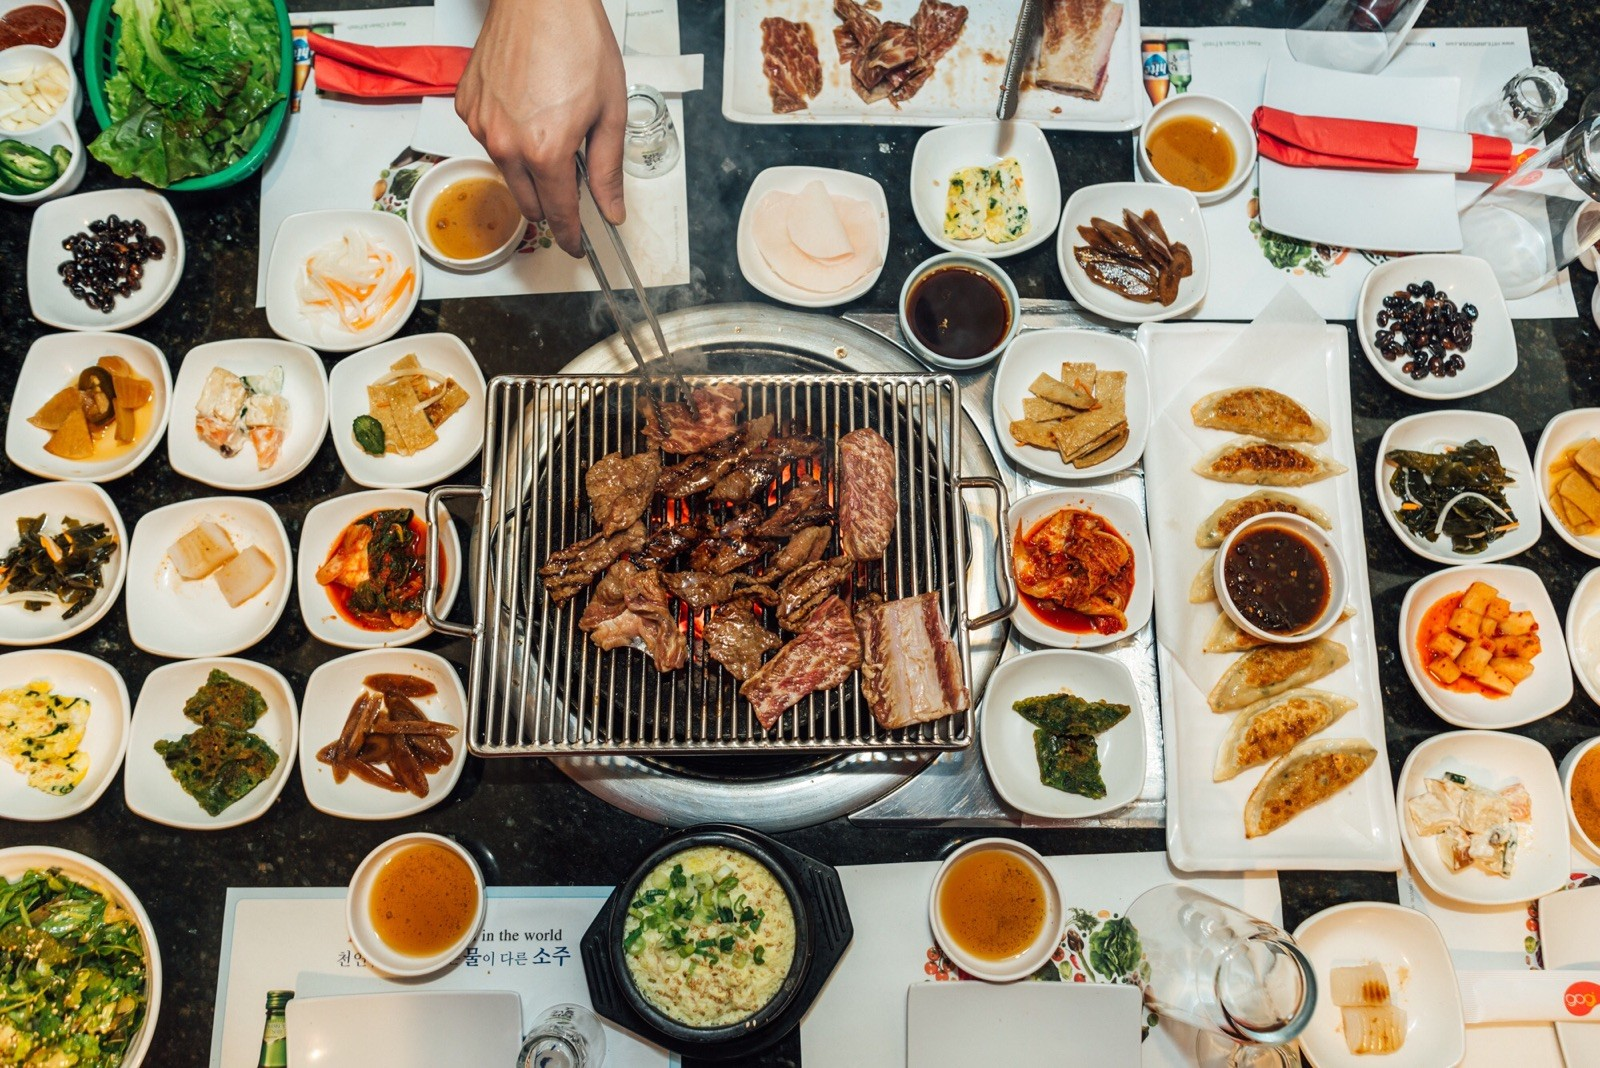 A person grilling meat on a tabletop grill that's surrounded by side dishes.